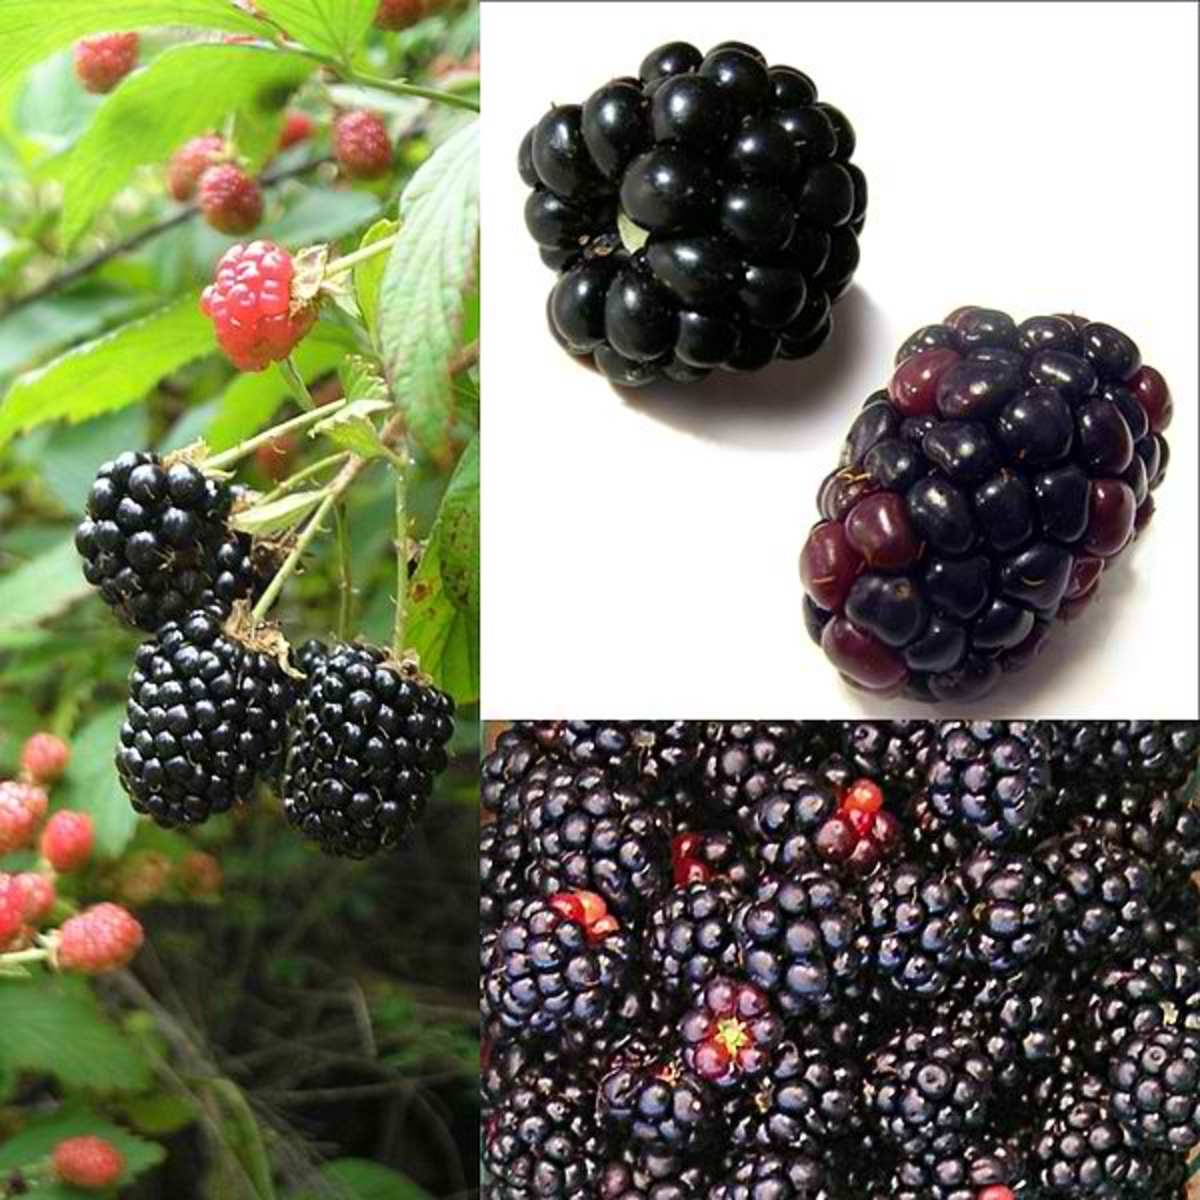 Rubus fruticosus| Montages of food